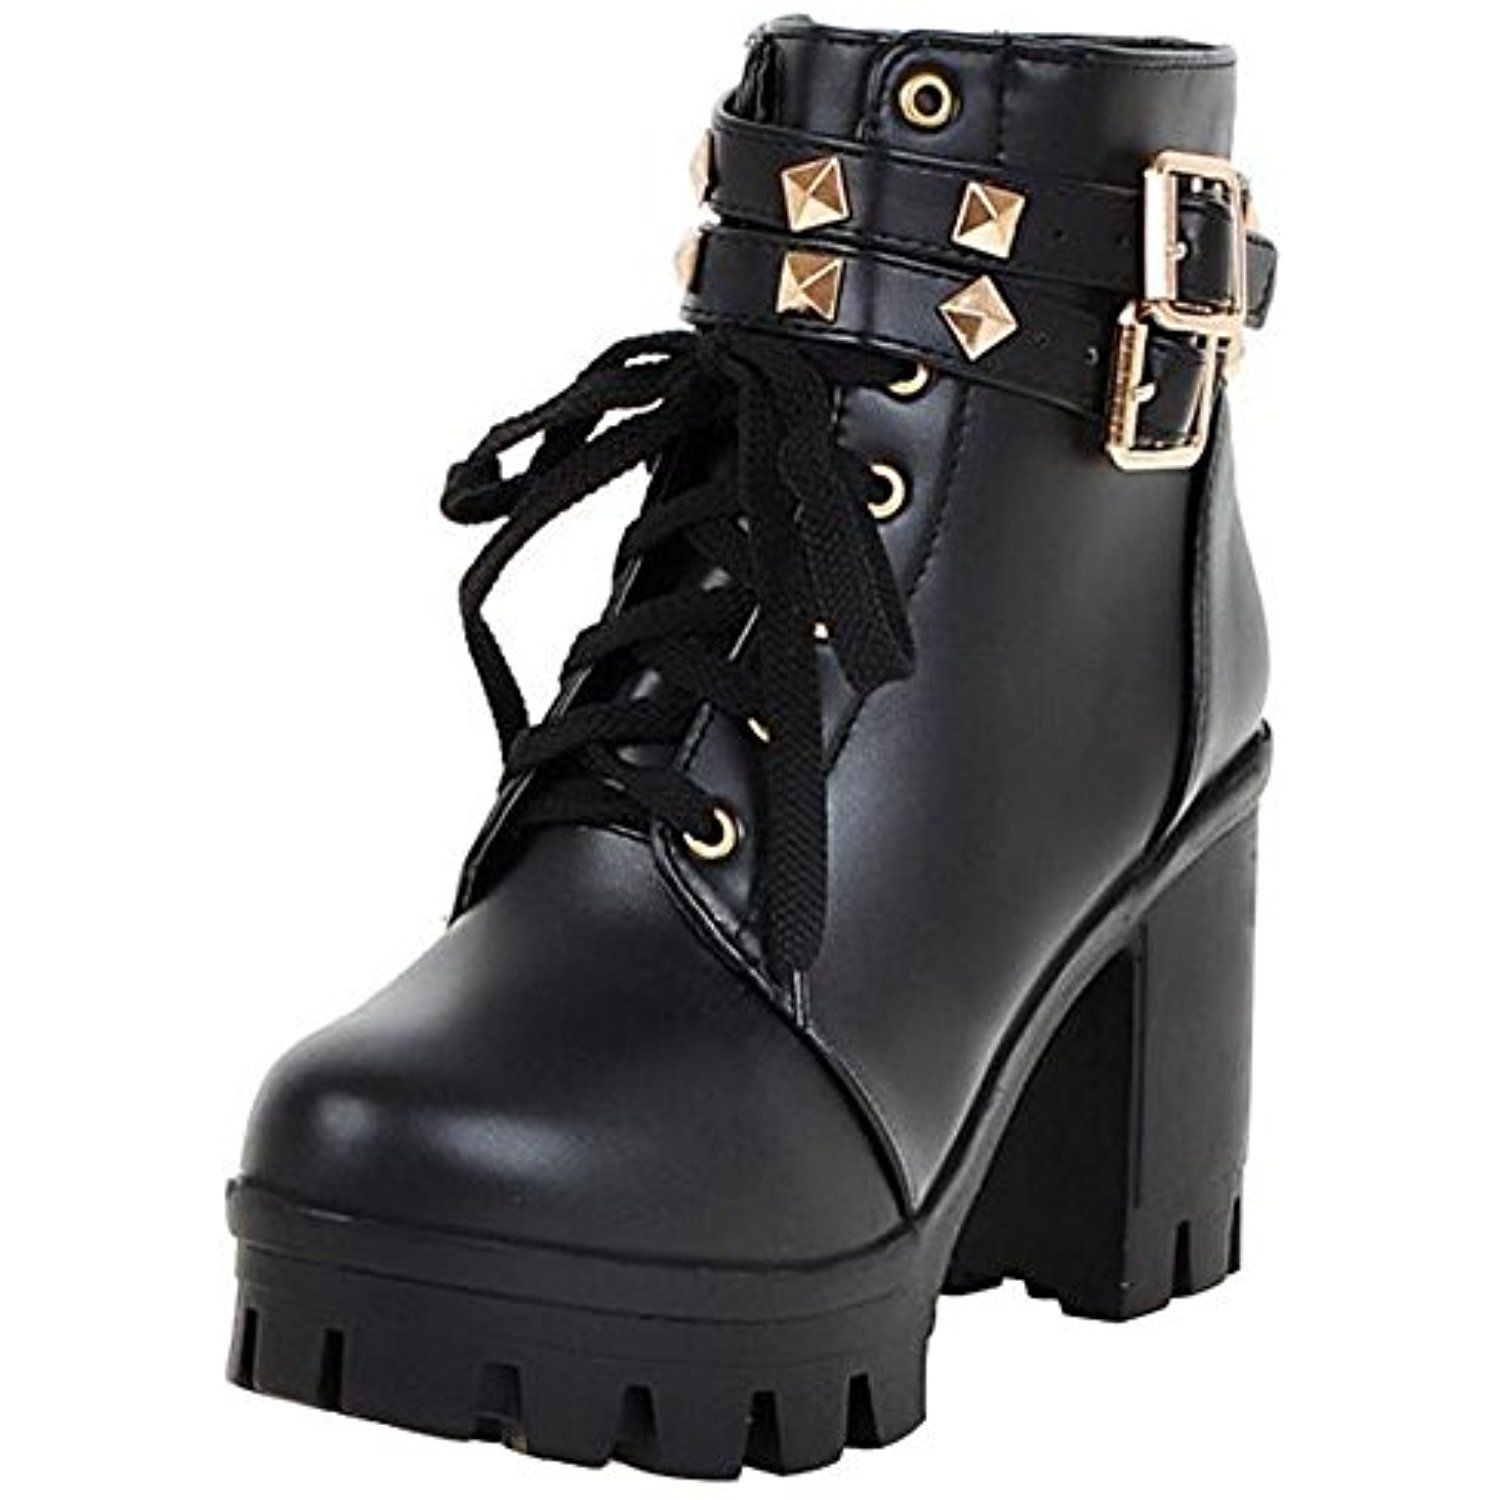 Women's Stylish Studded Rivets Buckled Straps Lace up Round Toe Block High Heel Platform Short Boots